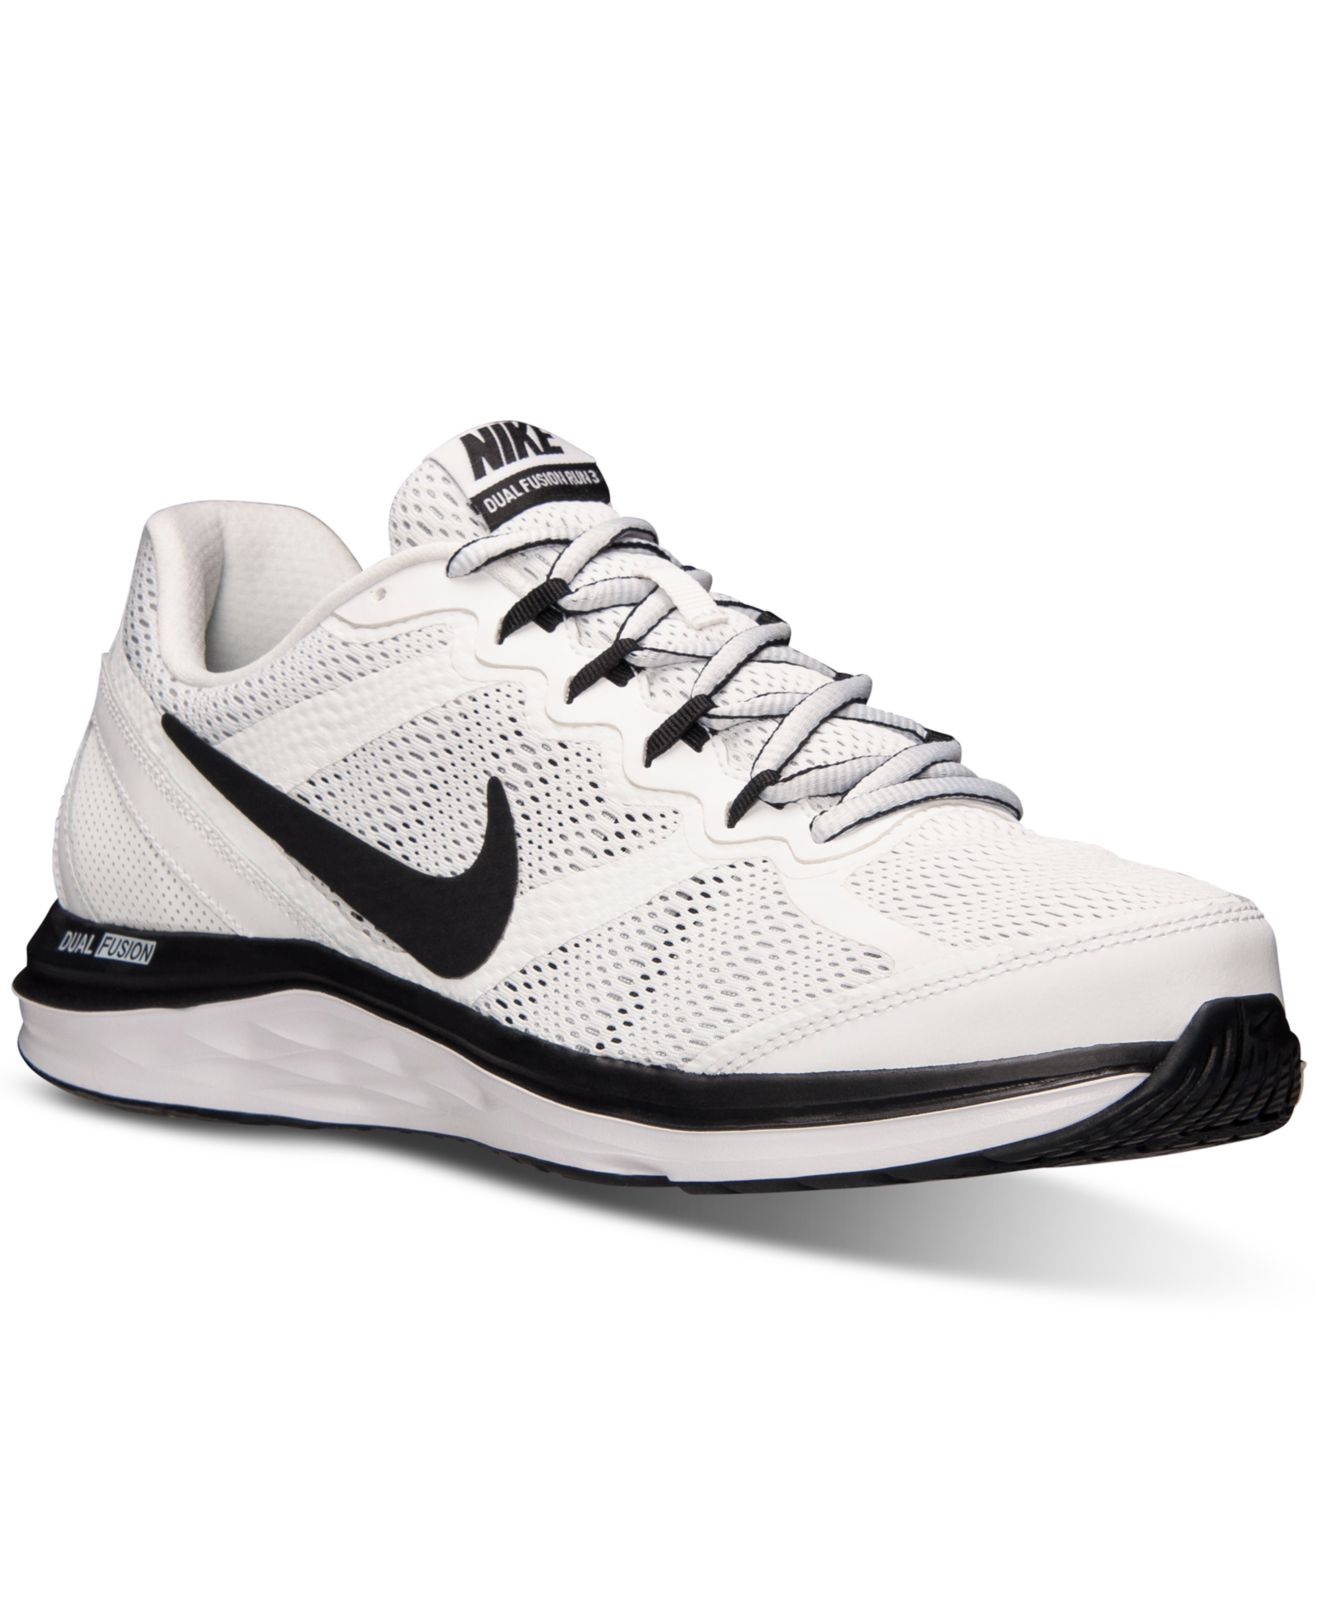 What Shoes Are As Comfy As Nike Dual Fusion